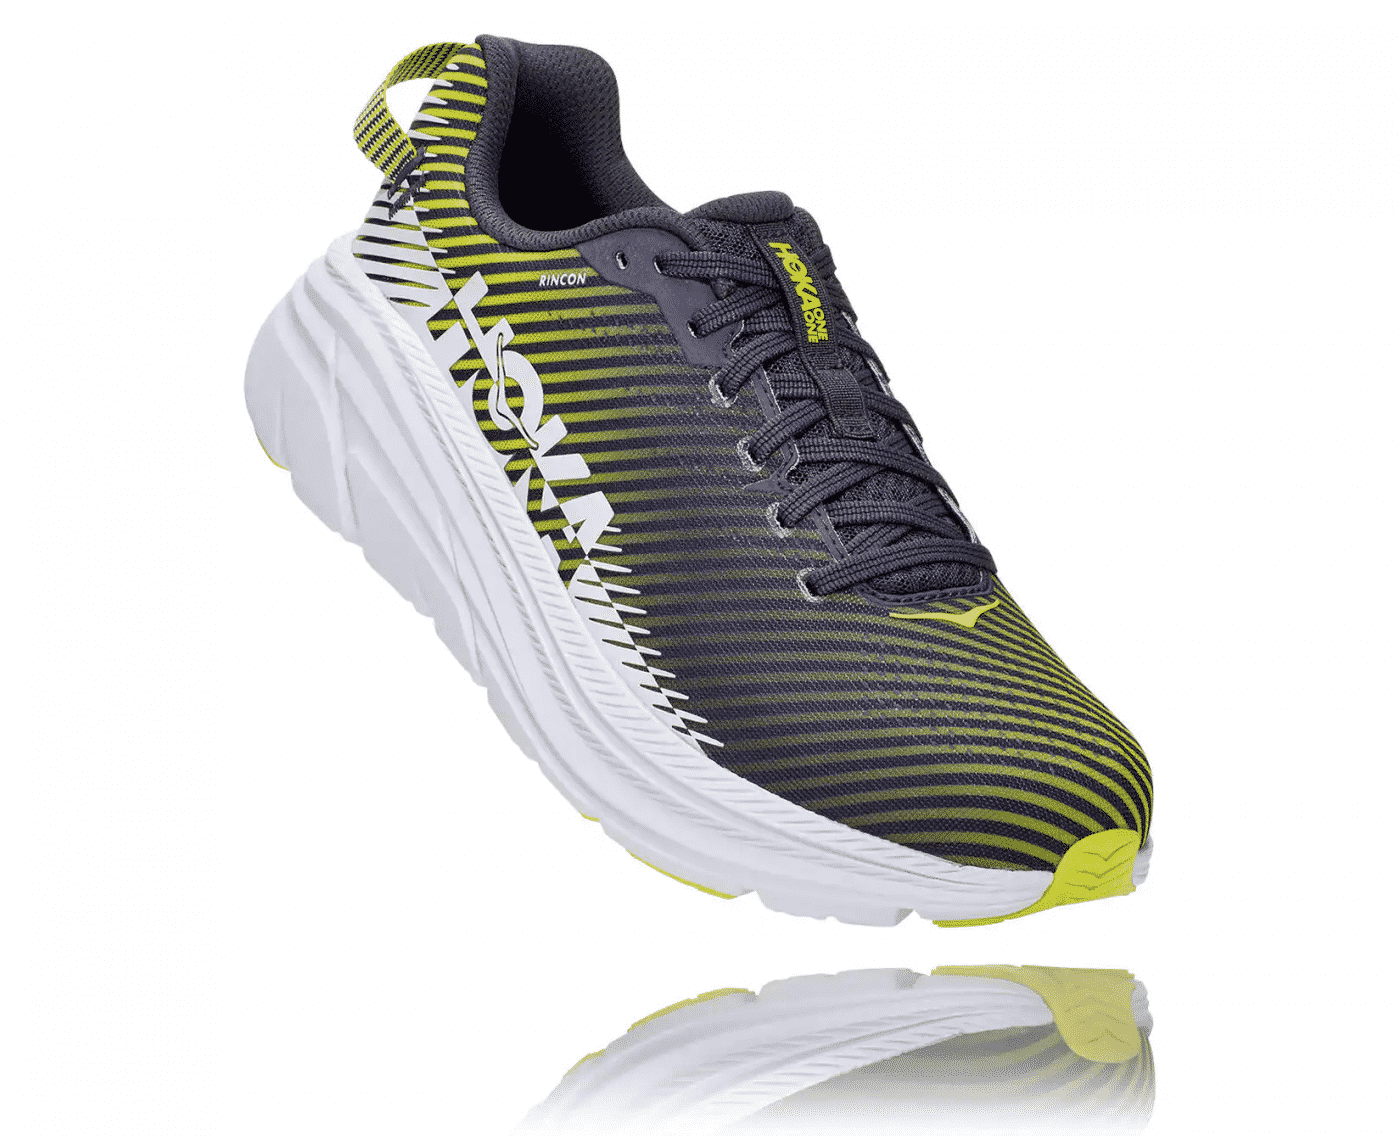 RINCON-2-Hoka-One-One-odyssey-grey-white-m